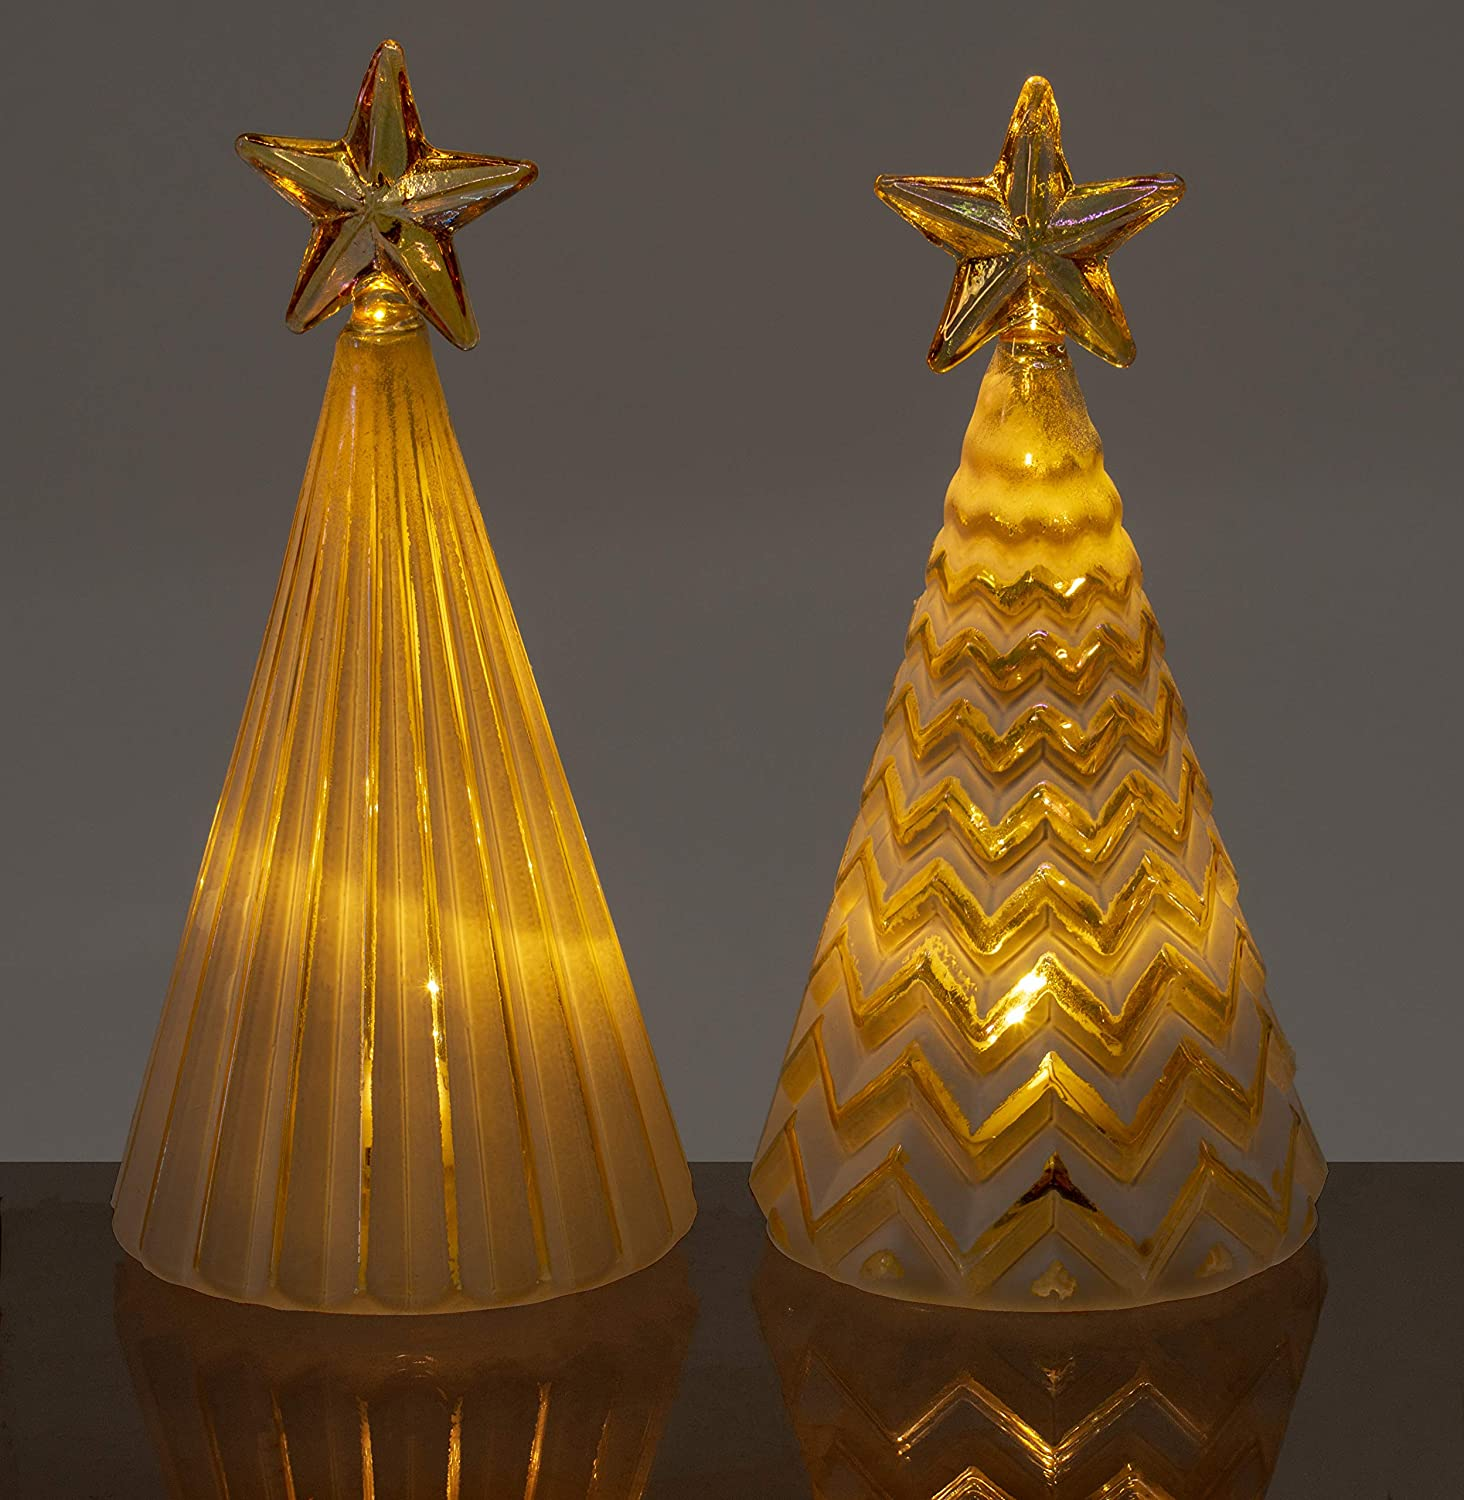 Red Co. Glass Christmas Tree Figurine Ornaments with Gold Star, Light-Up Holiday Season Decor, 5 Inches, Set of 2